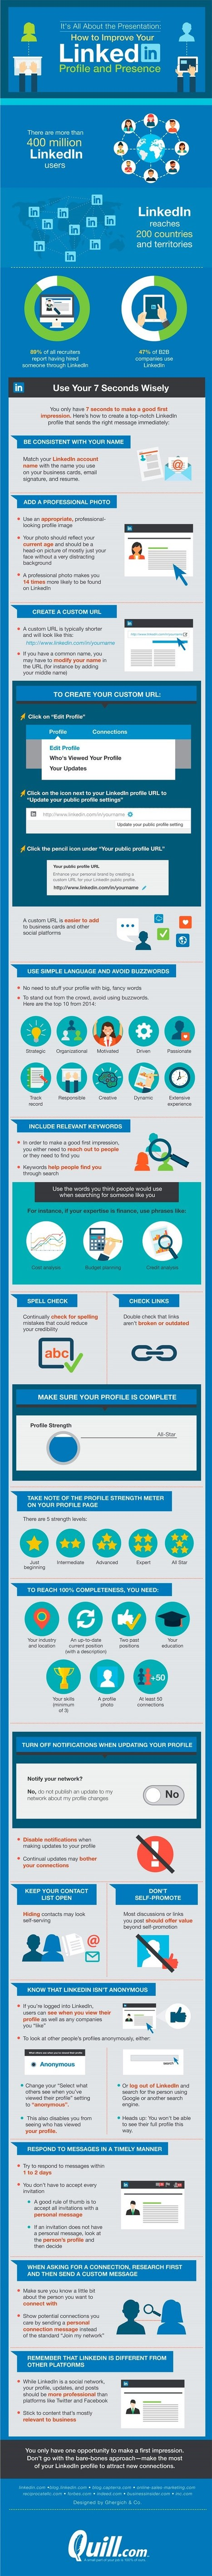 How to Improve Your LinkedIn Profile and Presence #Infographic | Communication Matters | Scoop.it